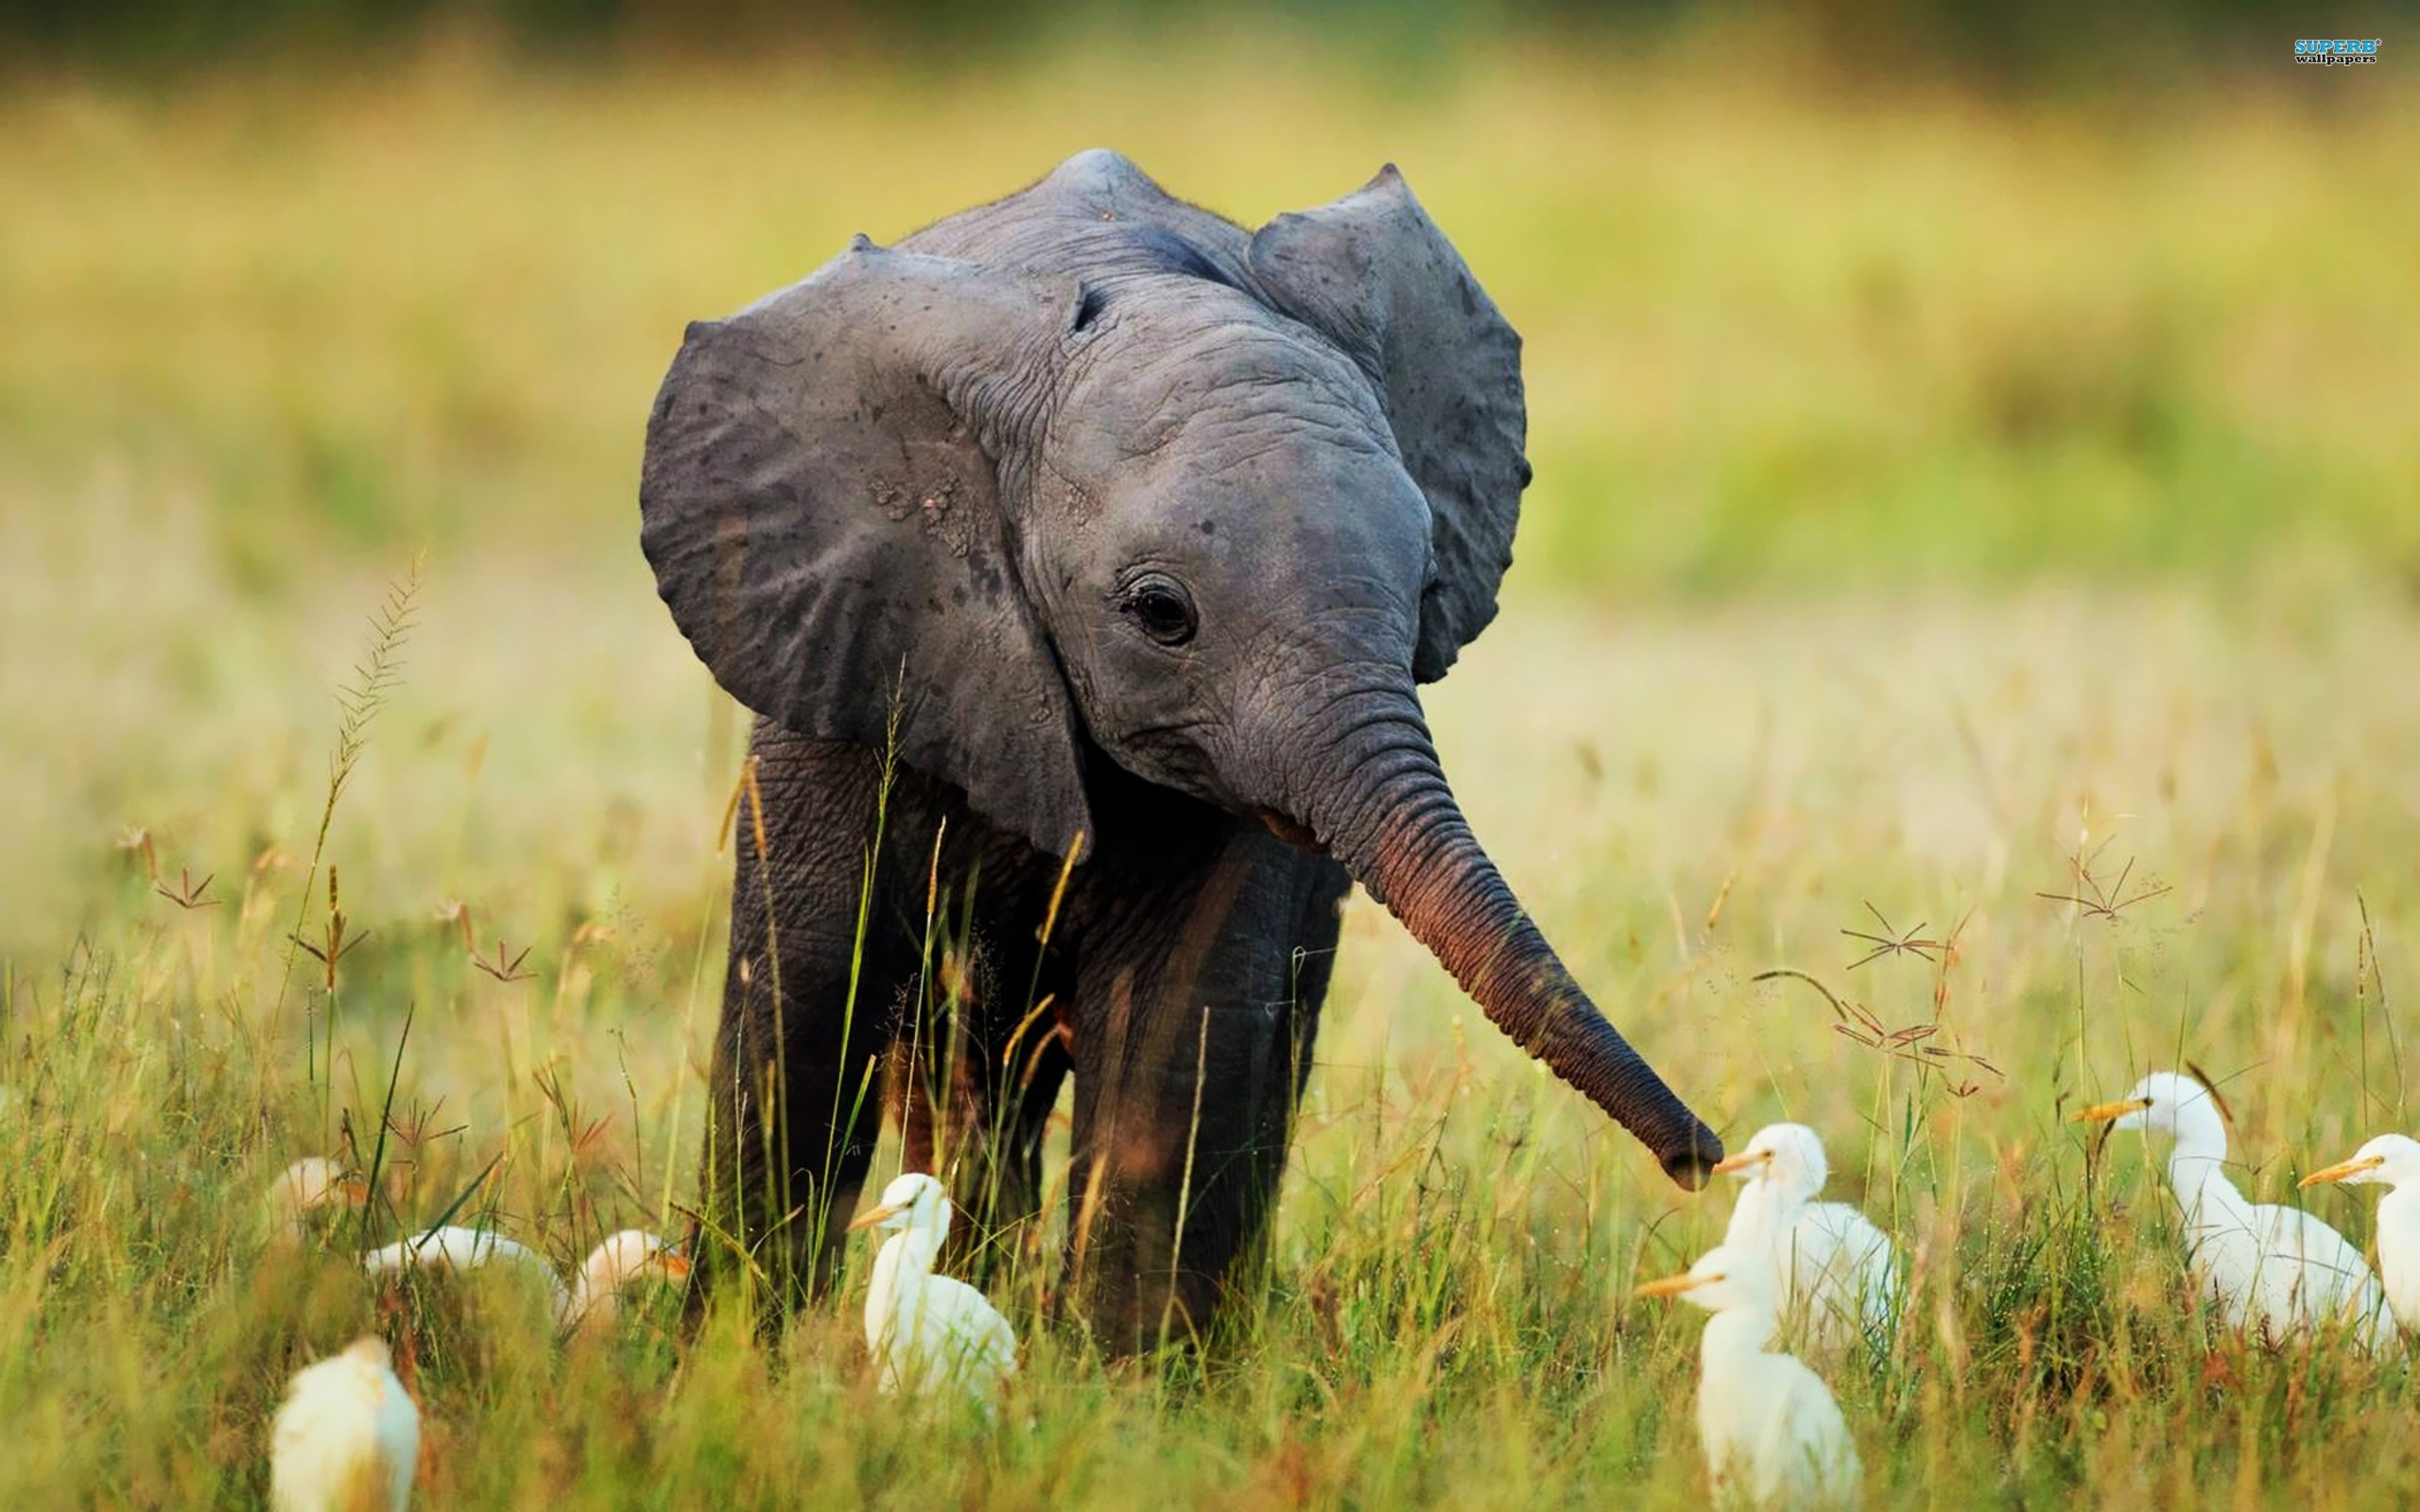 A baby elephant is called a calf - Serious Facts